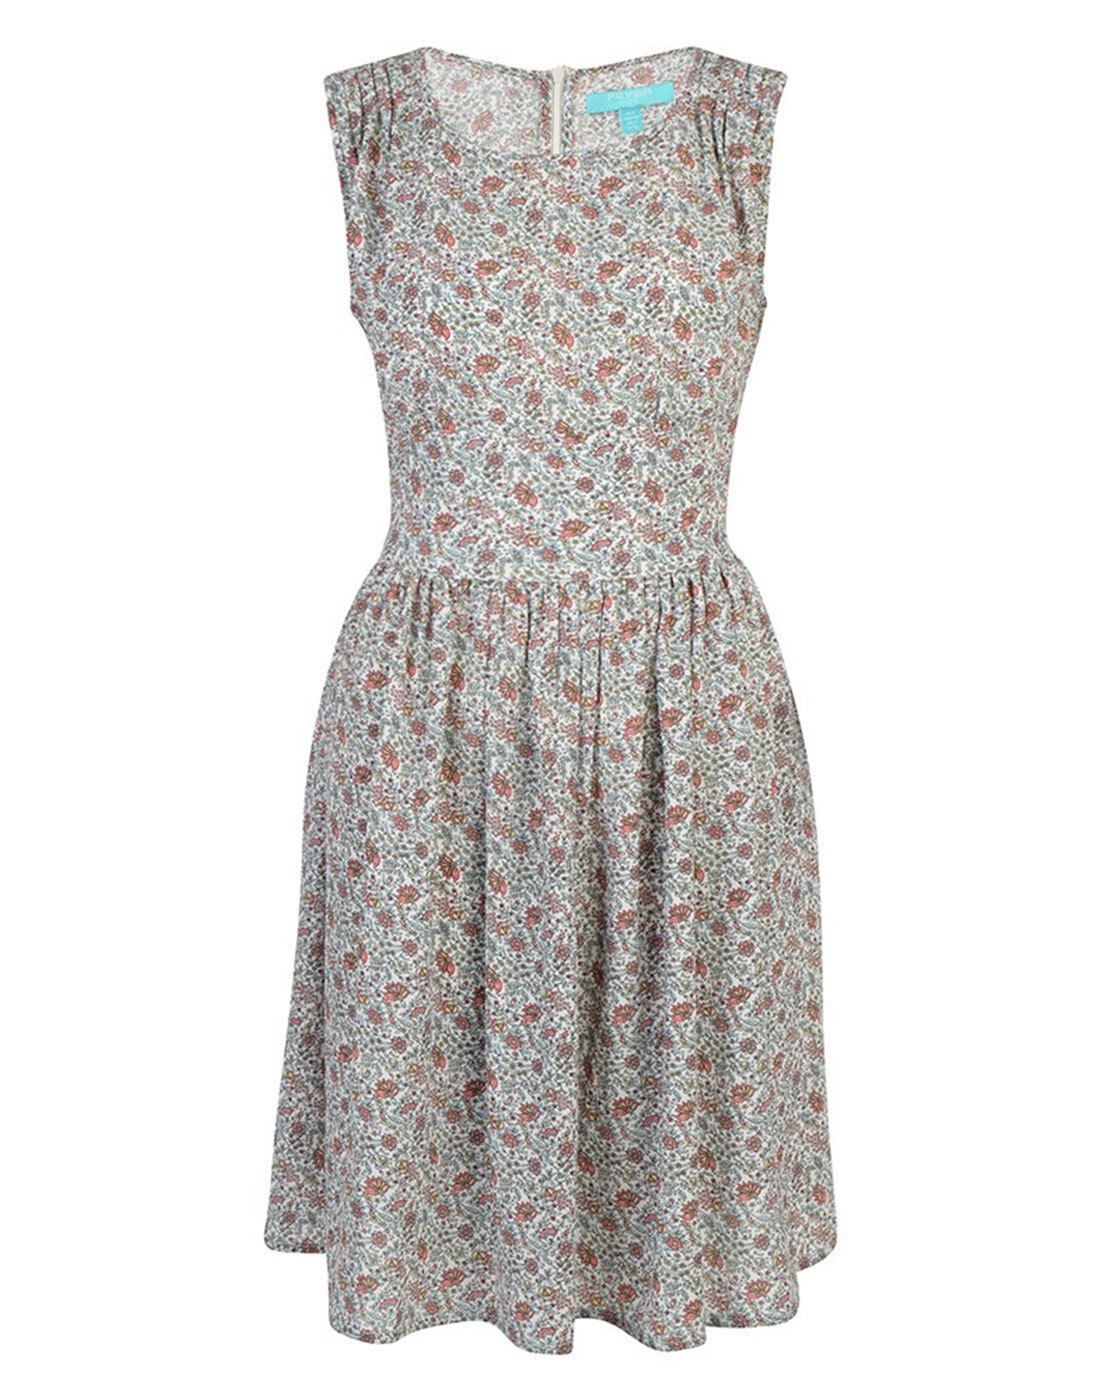 Frederica FEVER Retro 50s Crepe Ditsy Floral Dress